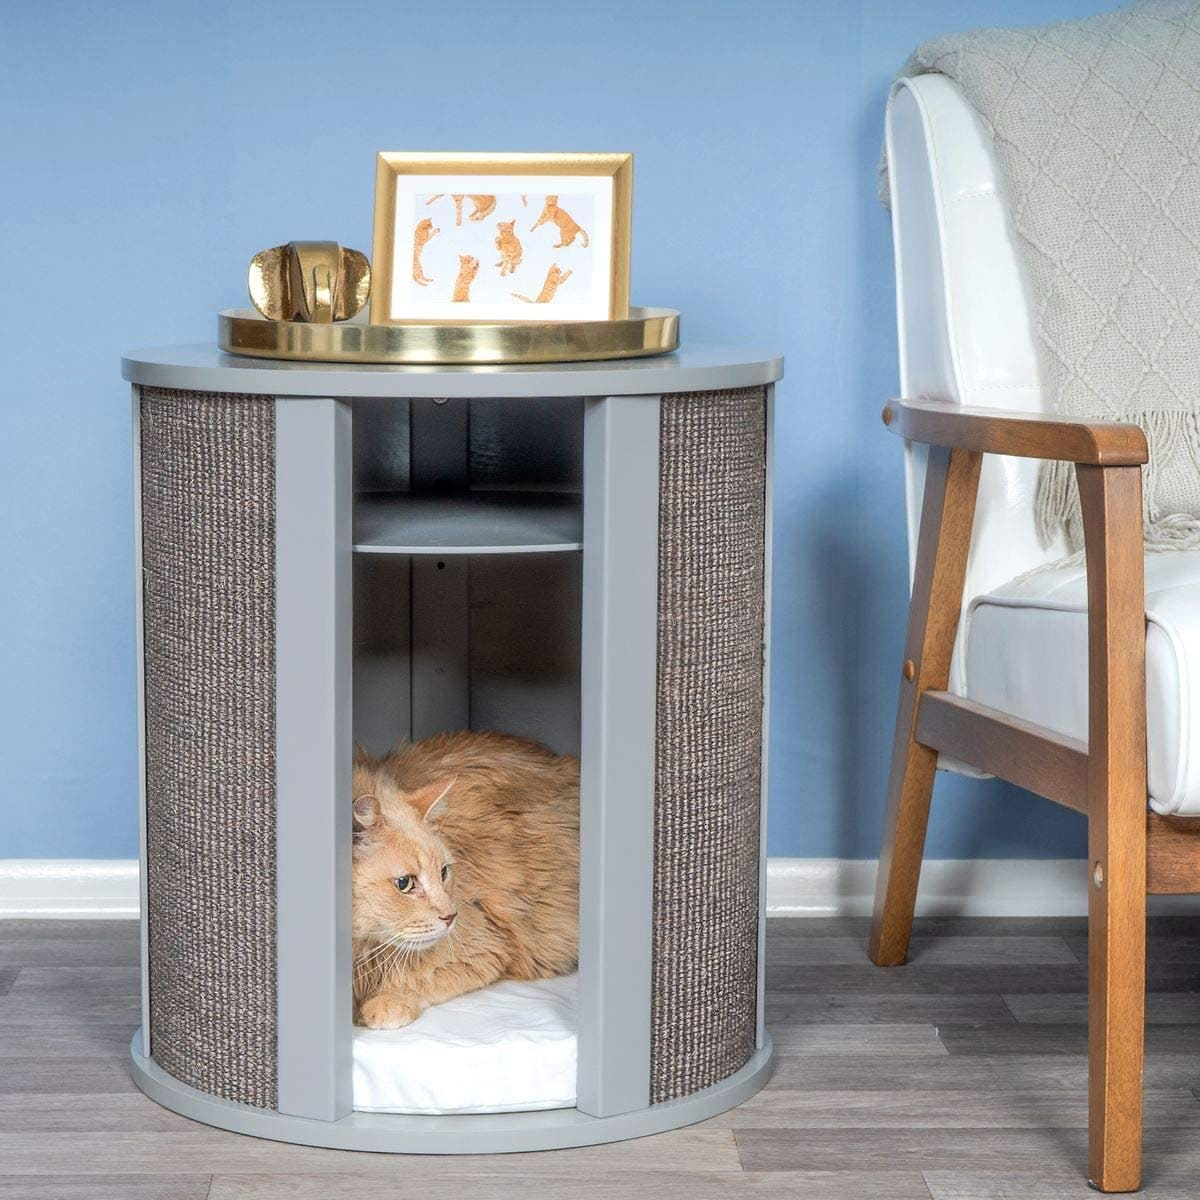 pet furniture 6 - 18 amazing pet furniture ideas that are perfect solutions for small spaces